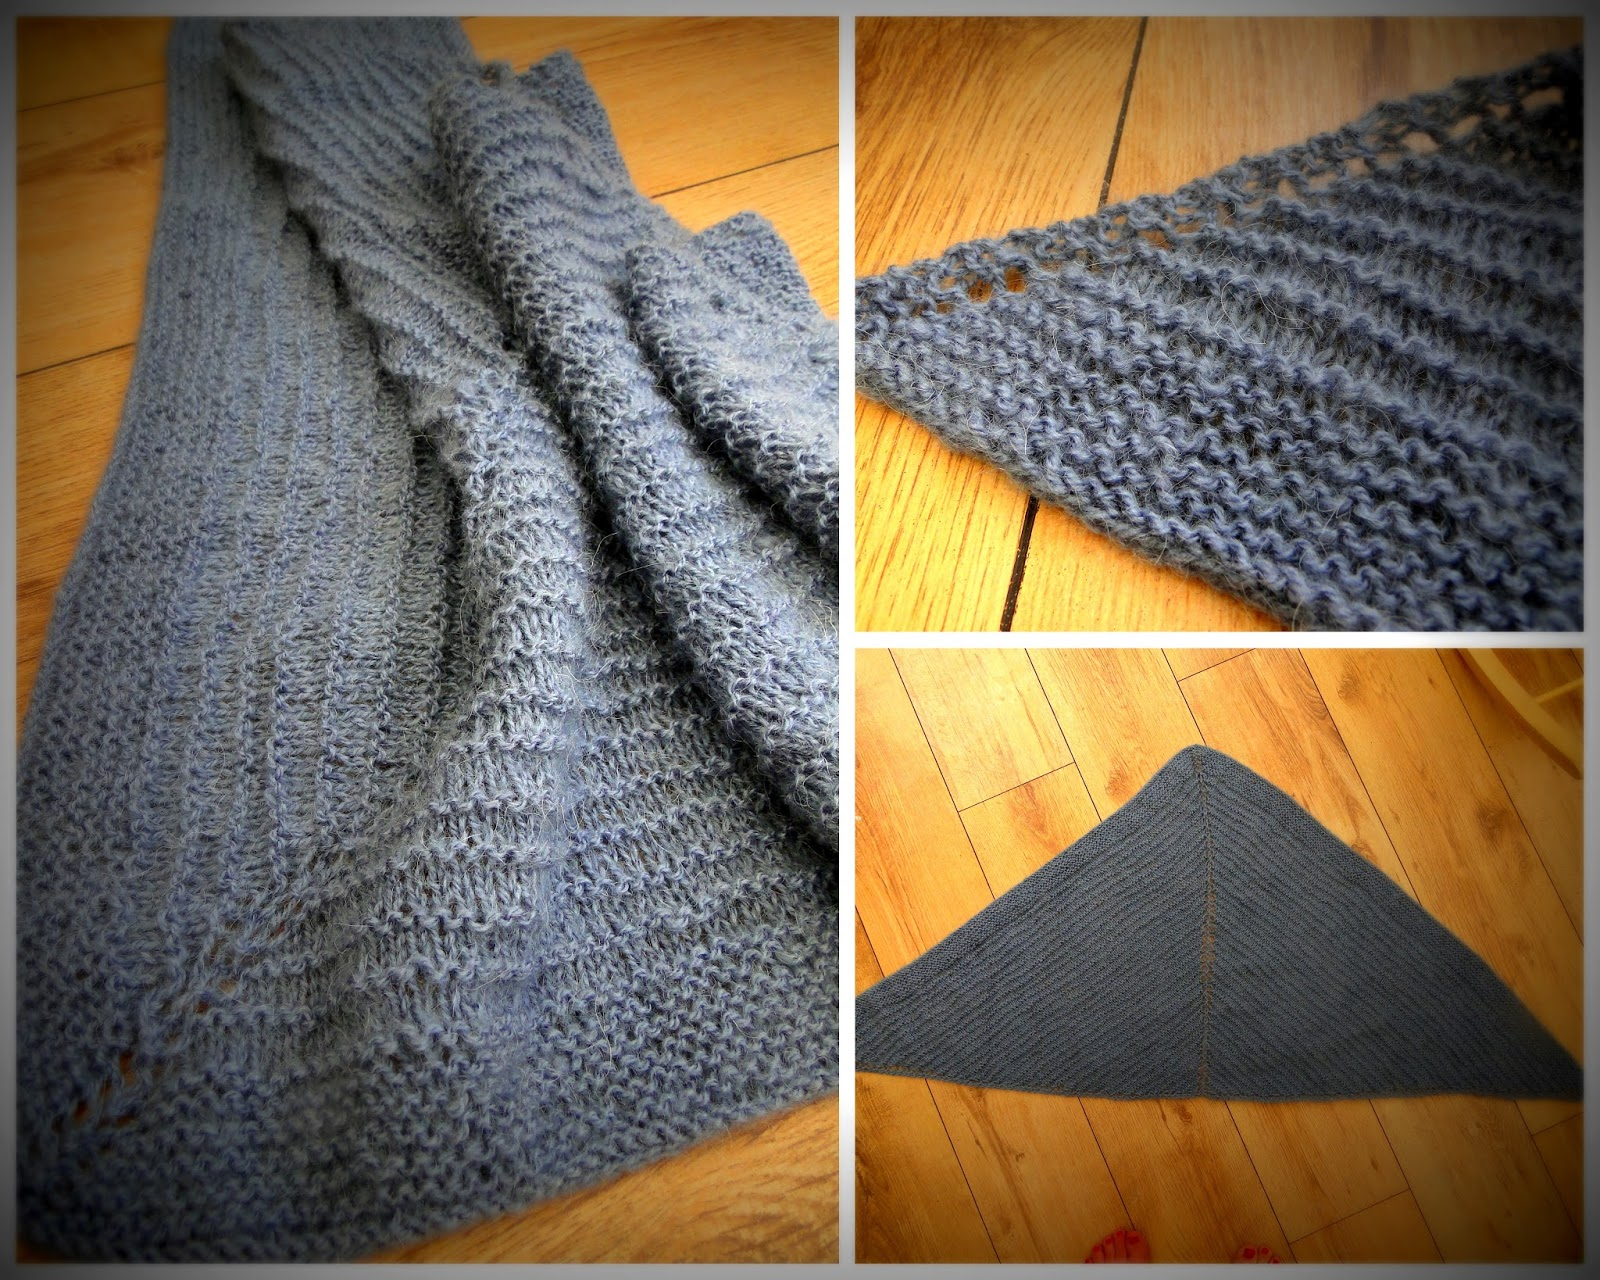 Easy Shawl Knitting Patterns Free Unique Design Ideas